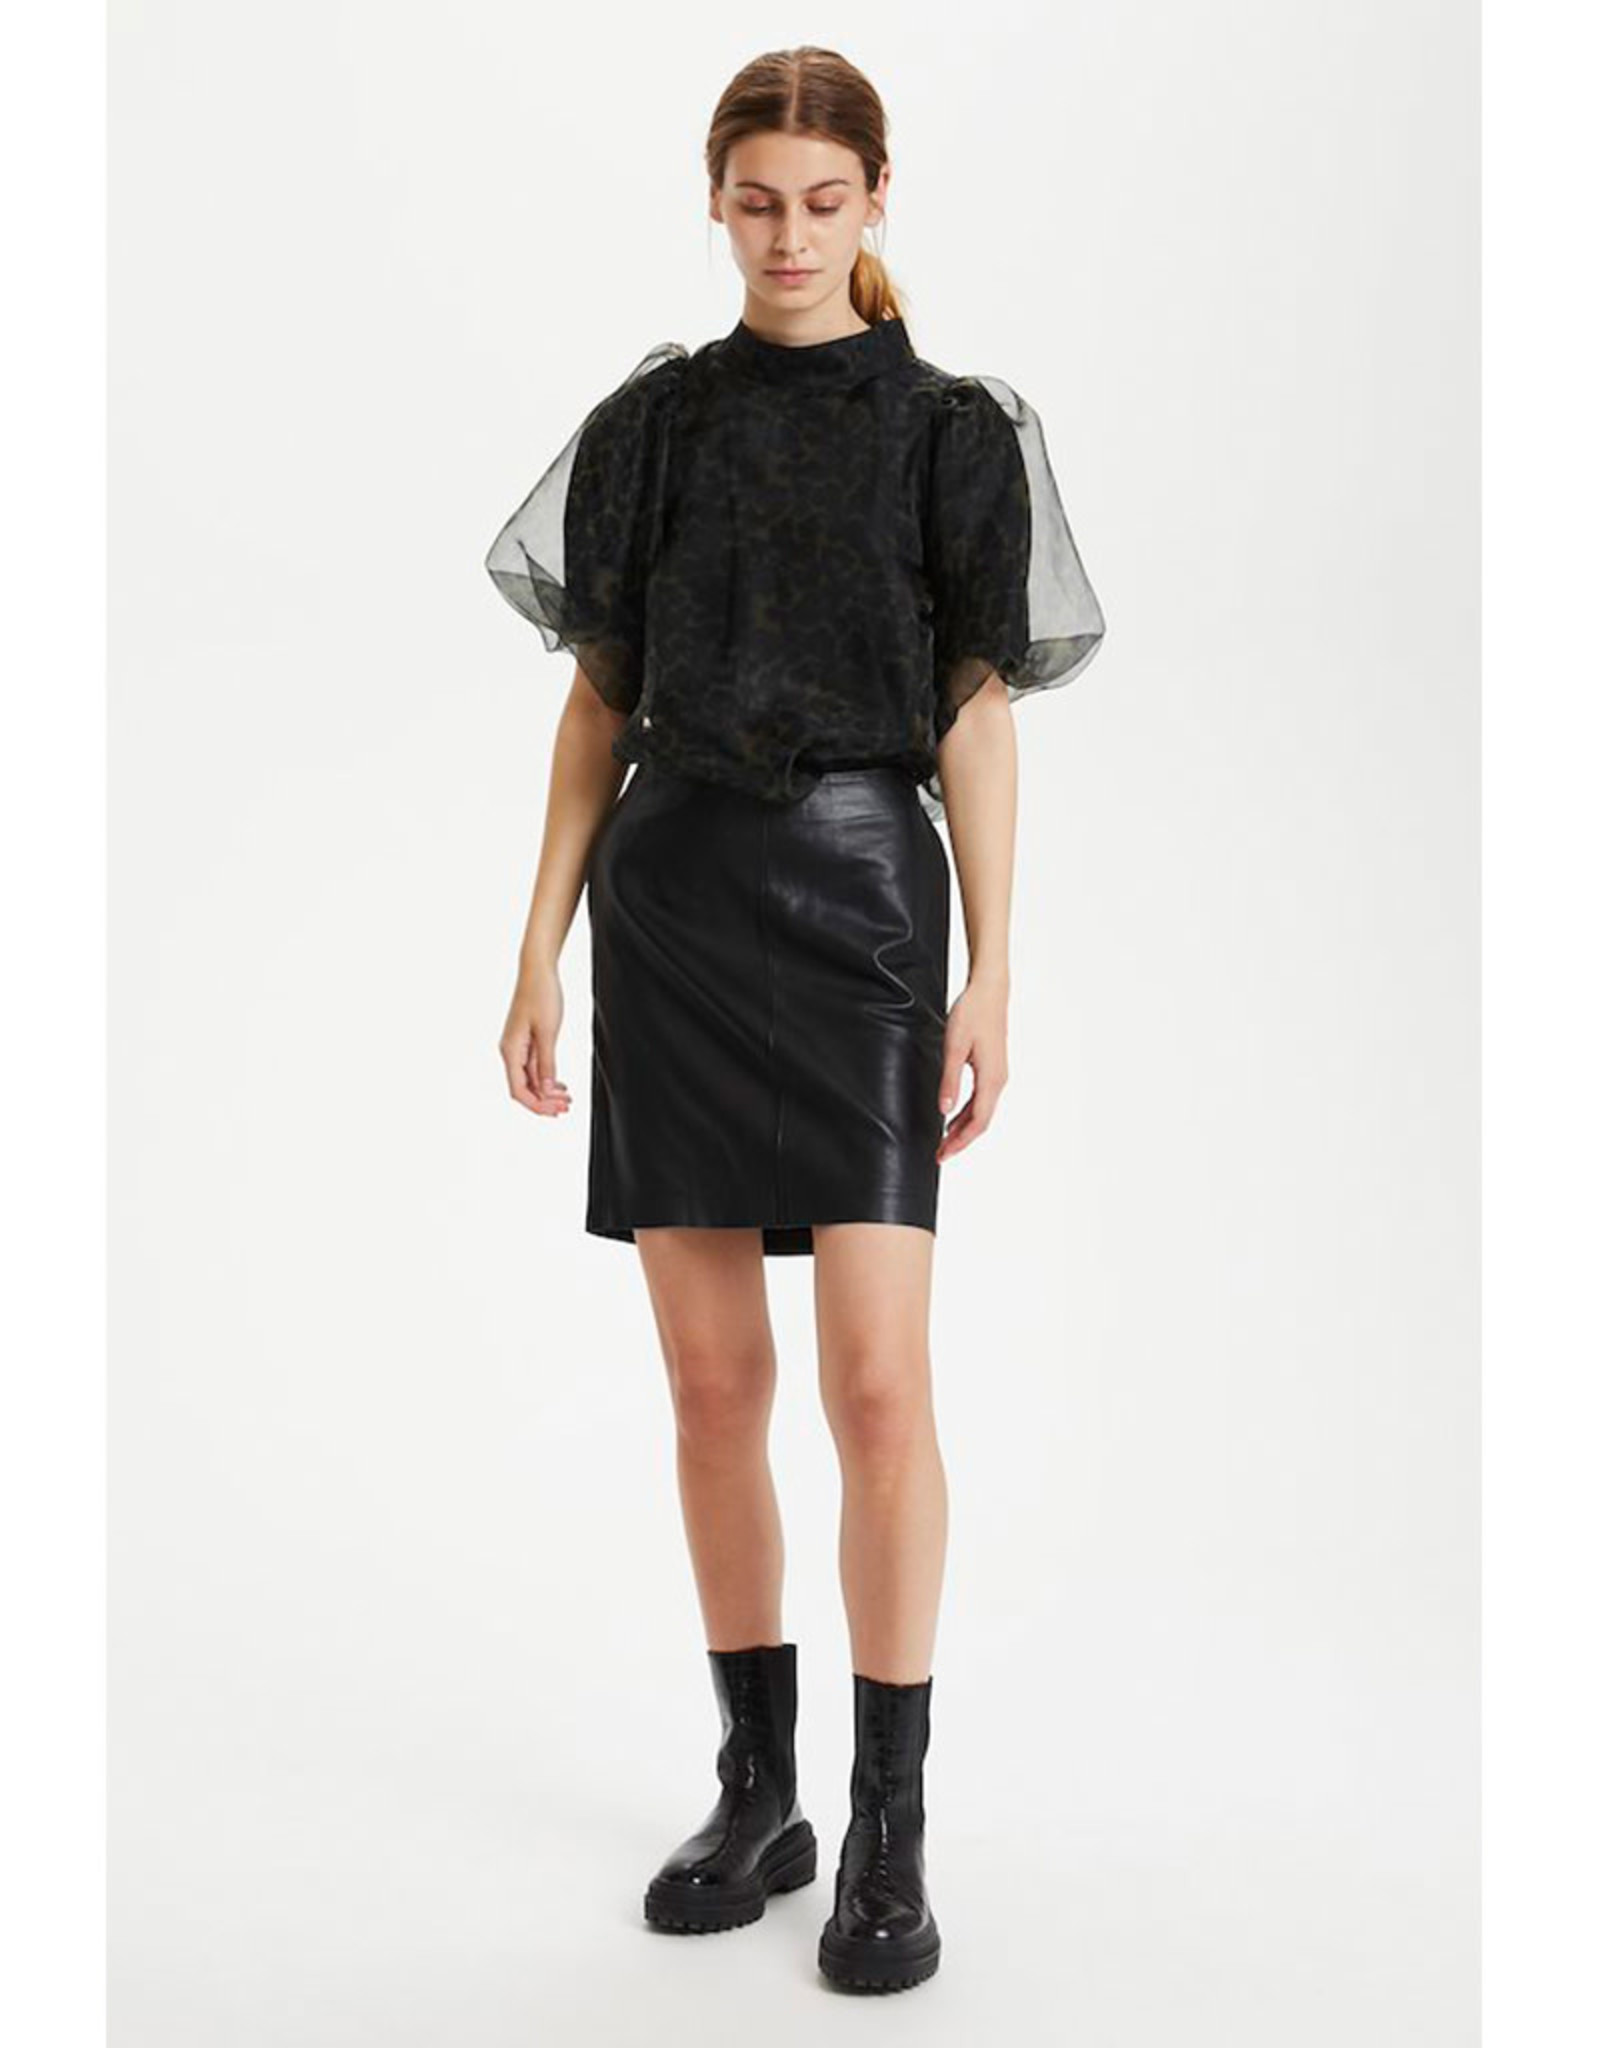 My Essential Wardrobe The Leather Skirt